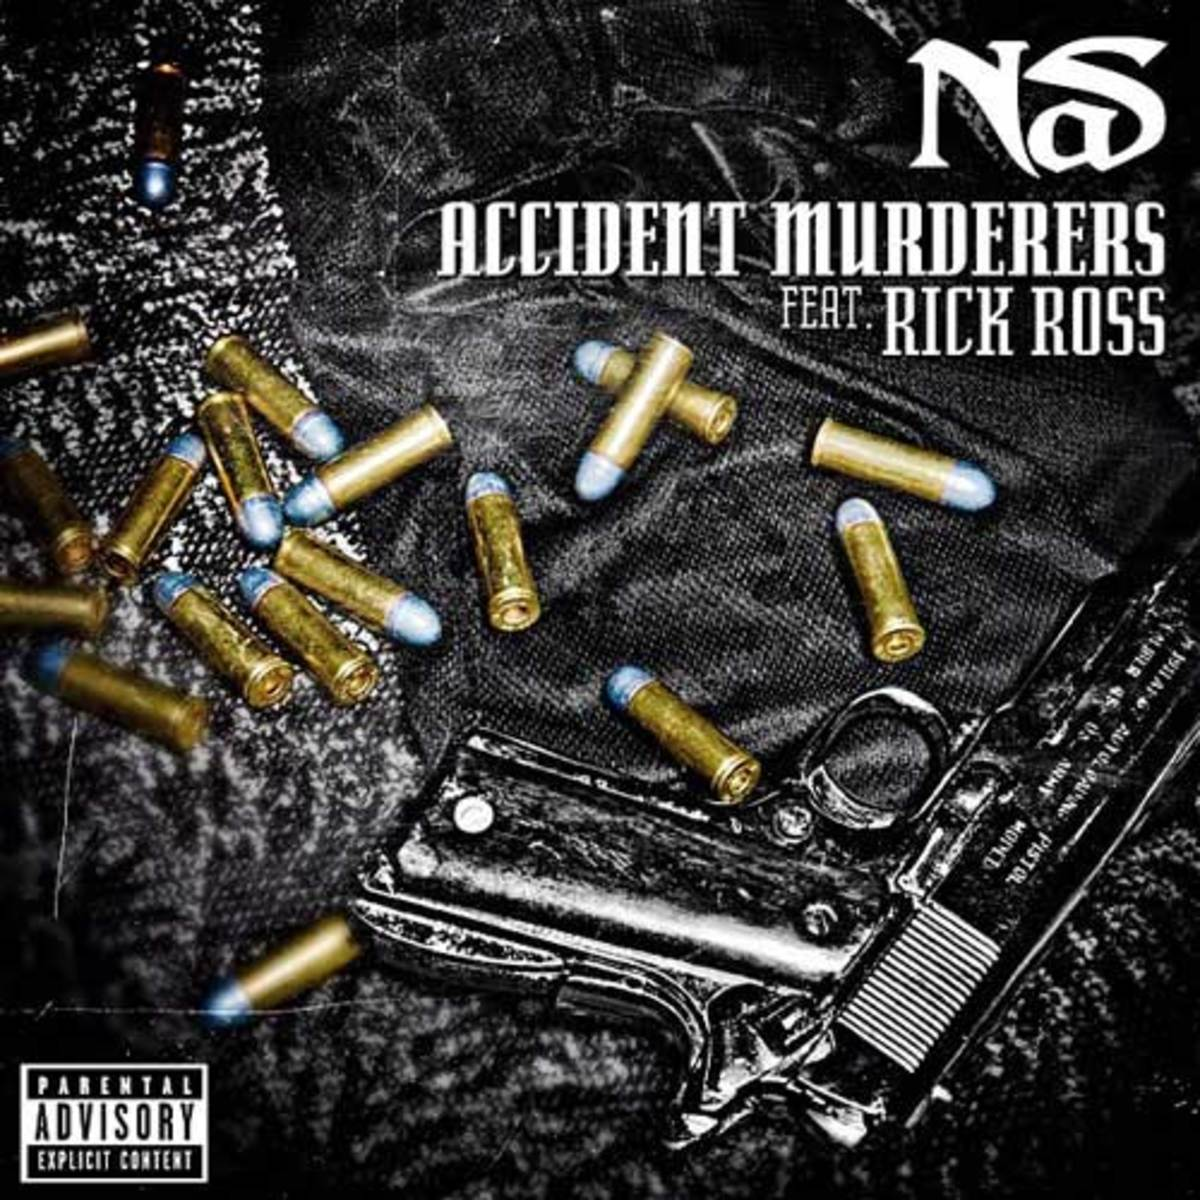 nas-accidentalmurder.jpg